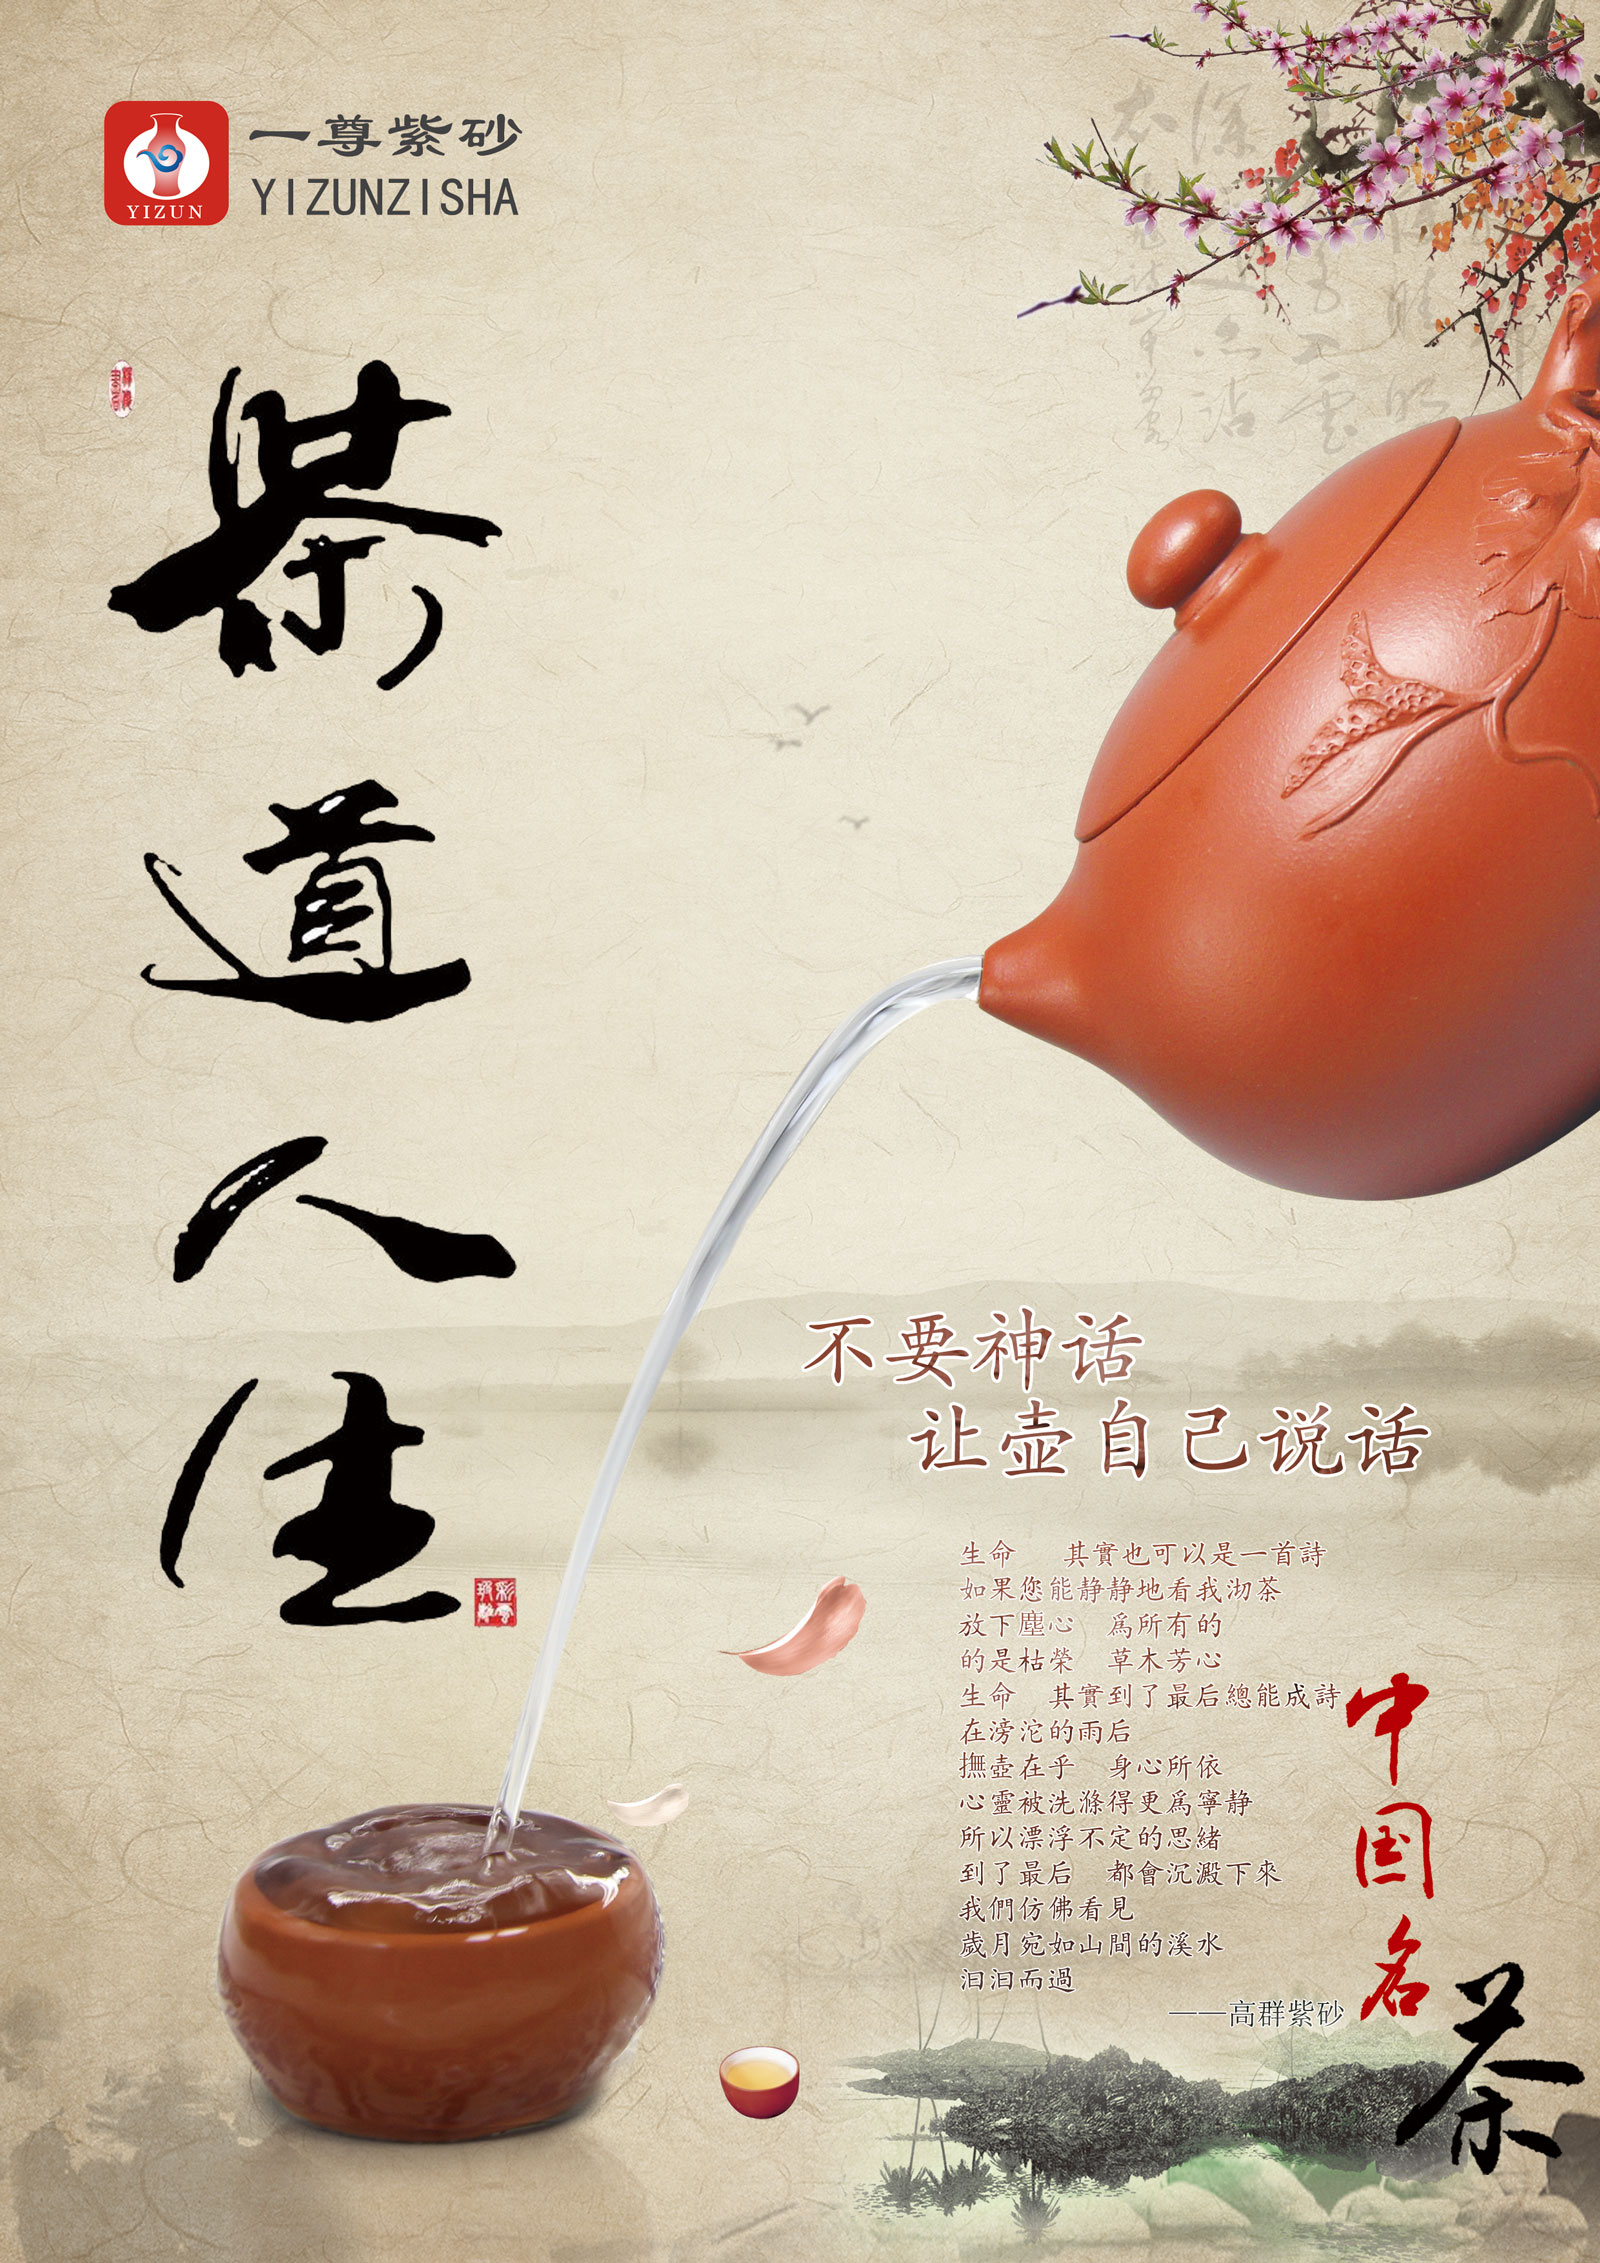 chinesefontdesign.com 2017 03 14 22 13 03 The tea ceremony life PS tea service advertising   China PSD File Free Download tea psd Chinese tea culture china tea psd